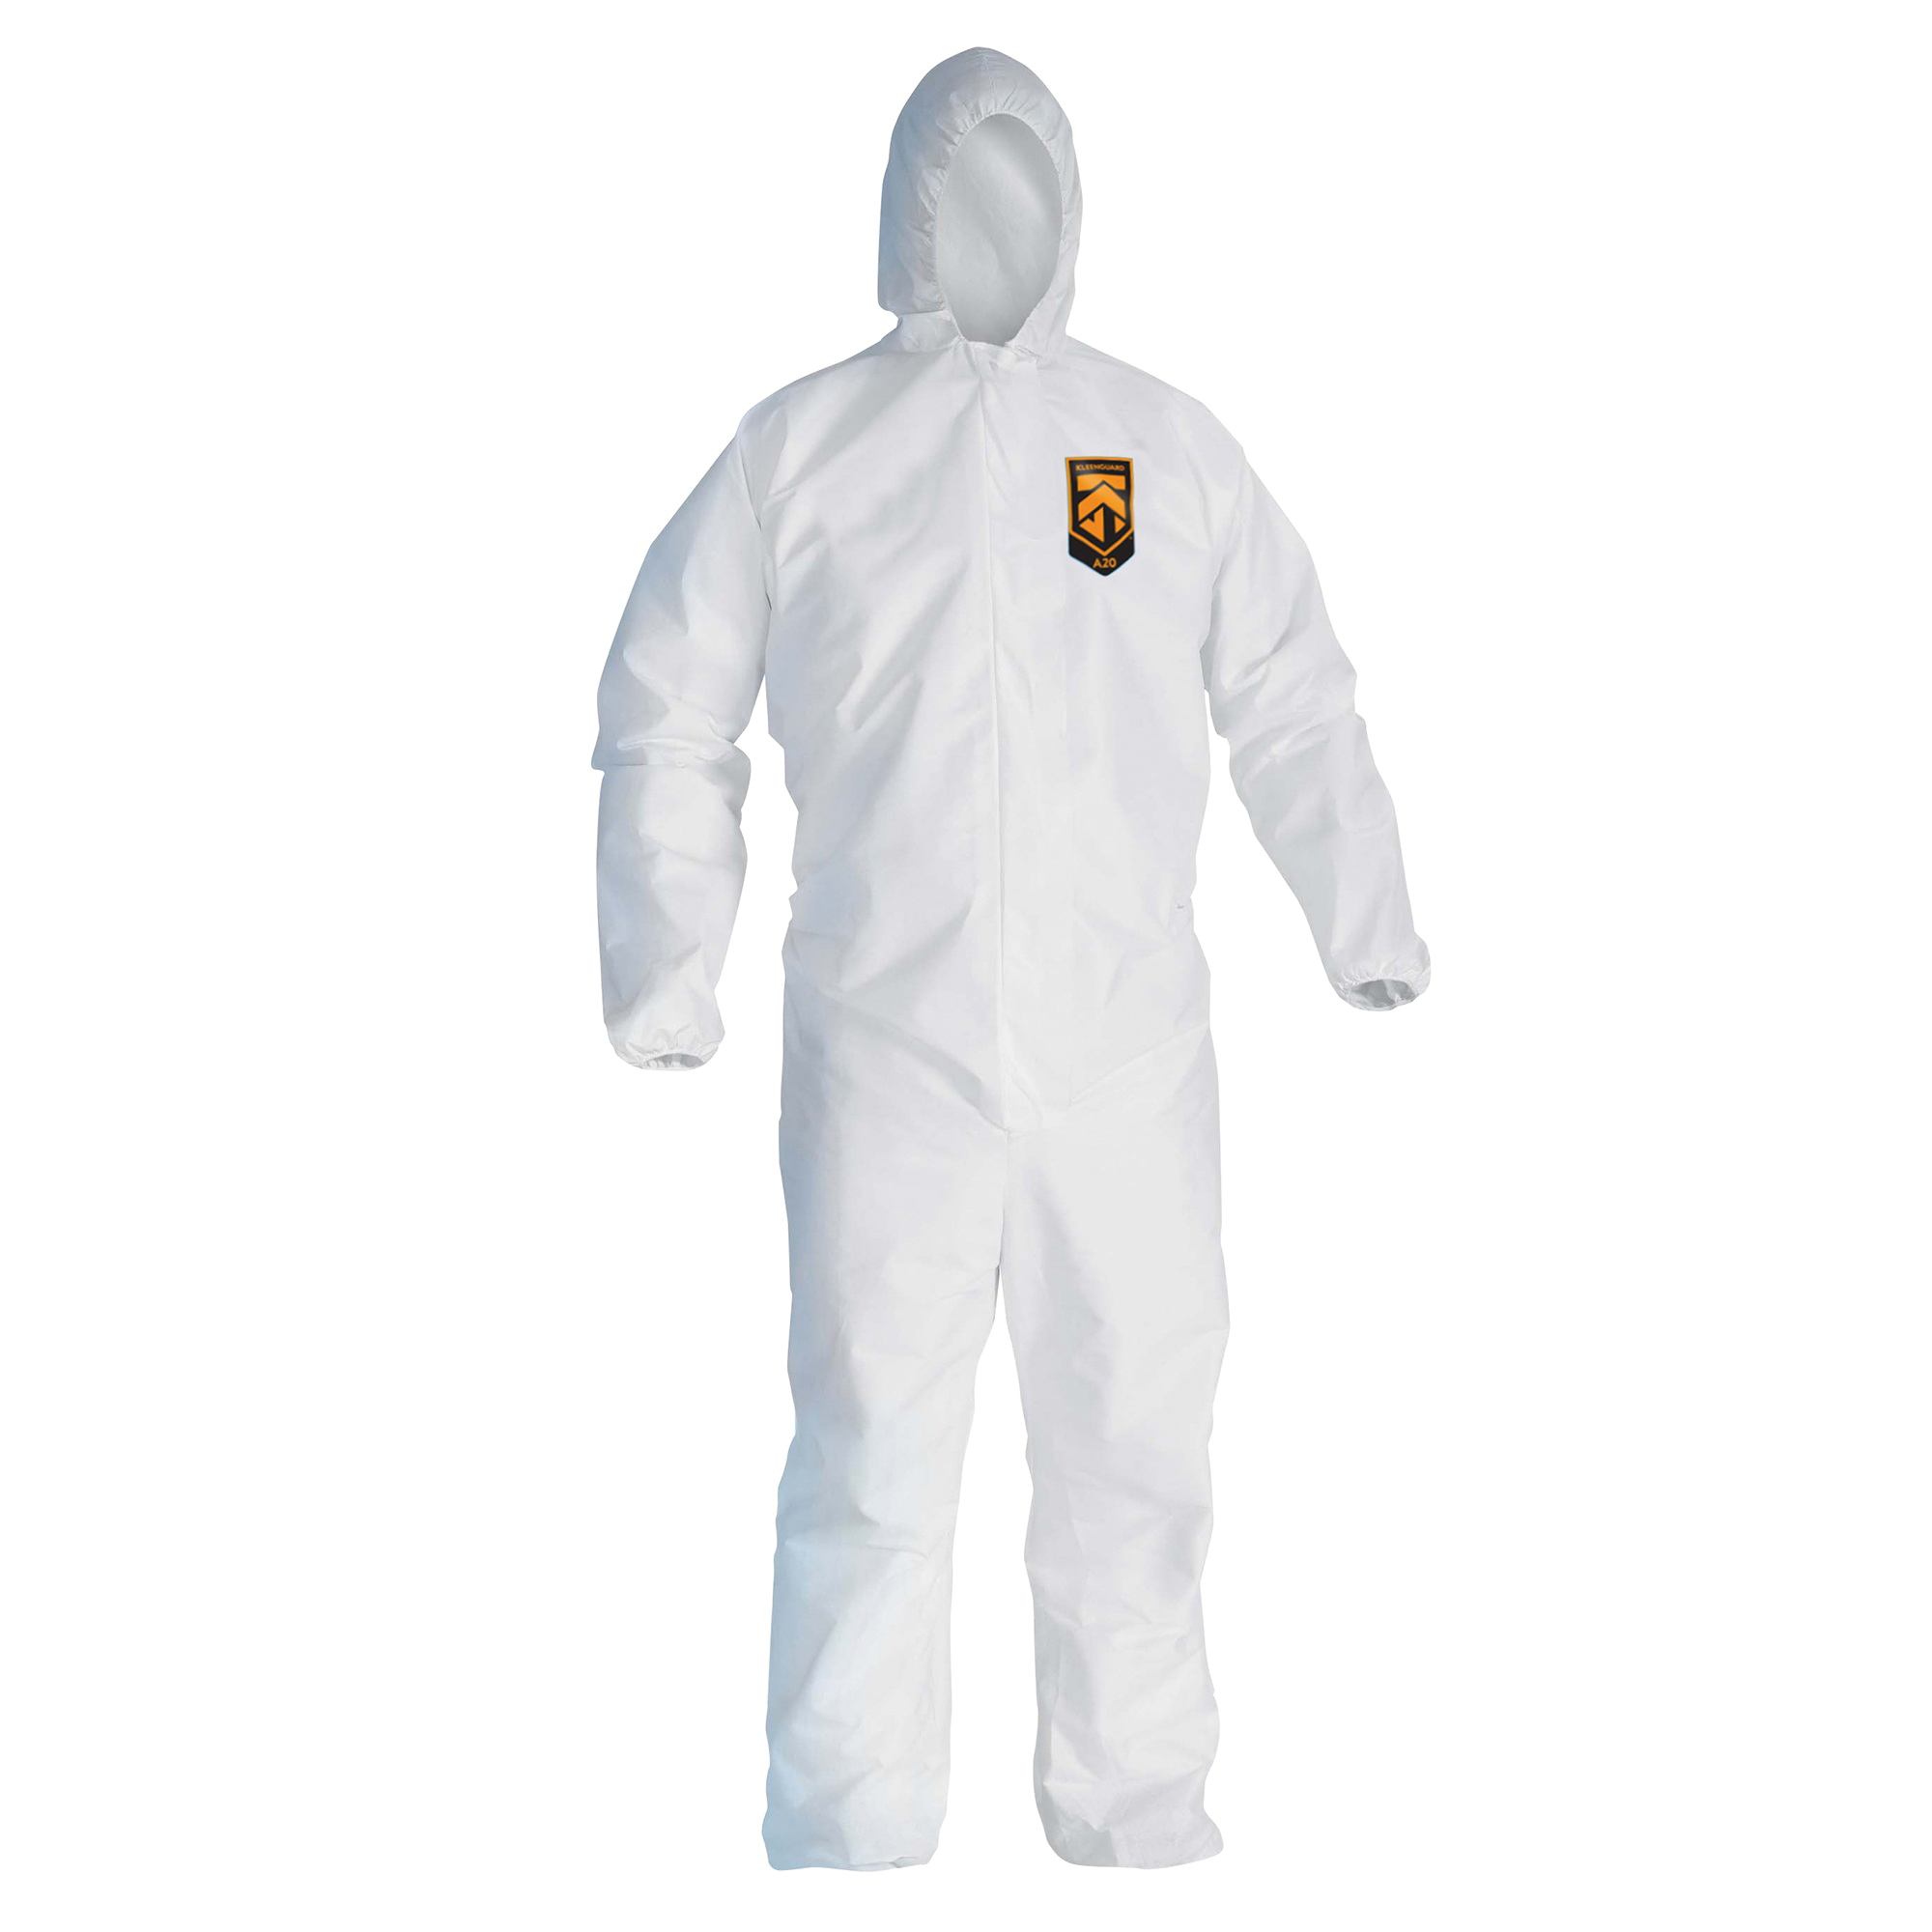 KleenGuard™ 10606 A10 Breathable Light Duty Lightweight Disposable Coverall, L, White, SMS Fabric, 25 in Chest, 29 in L Inseam